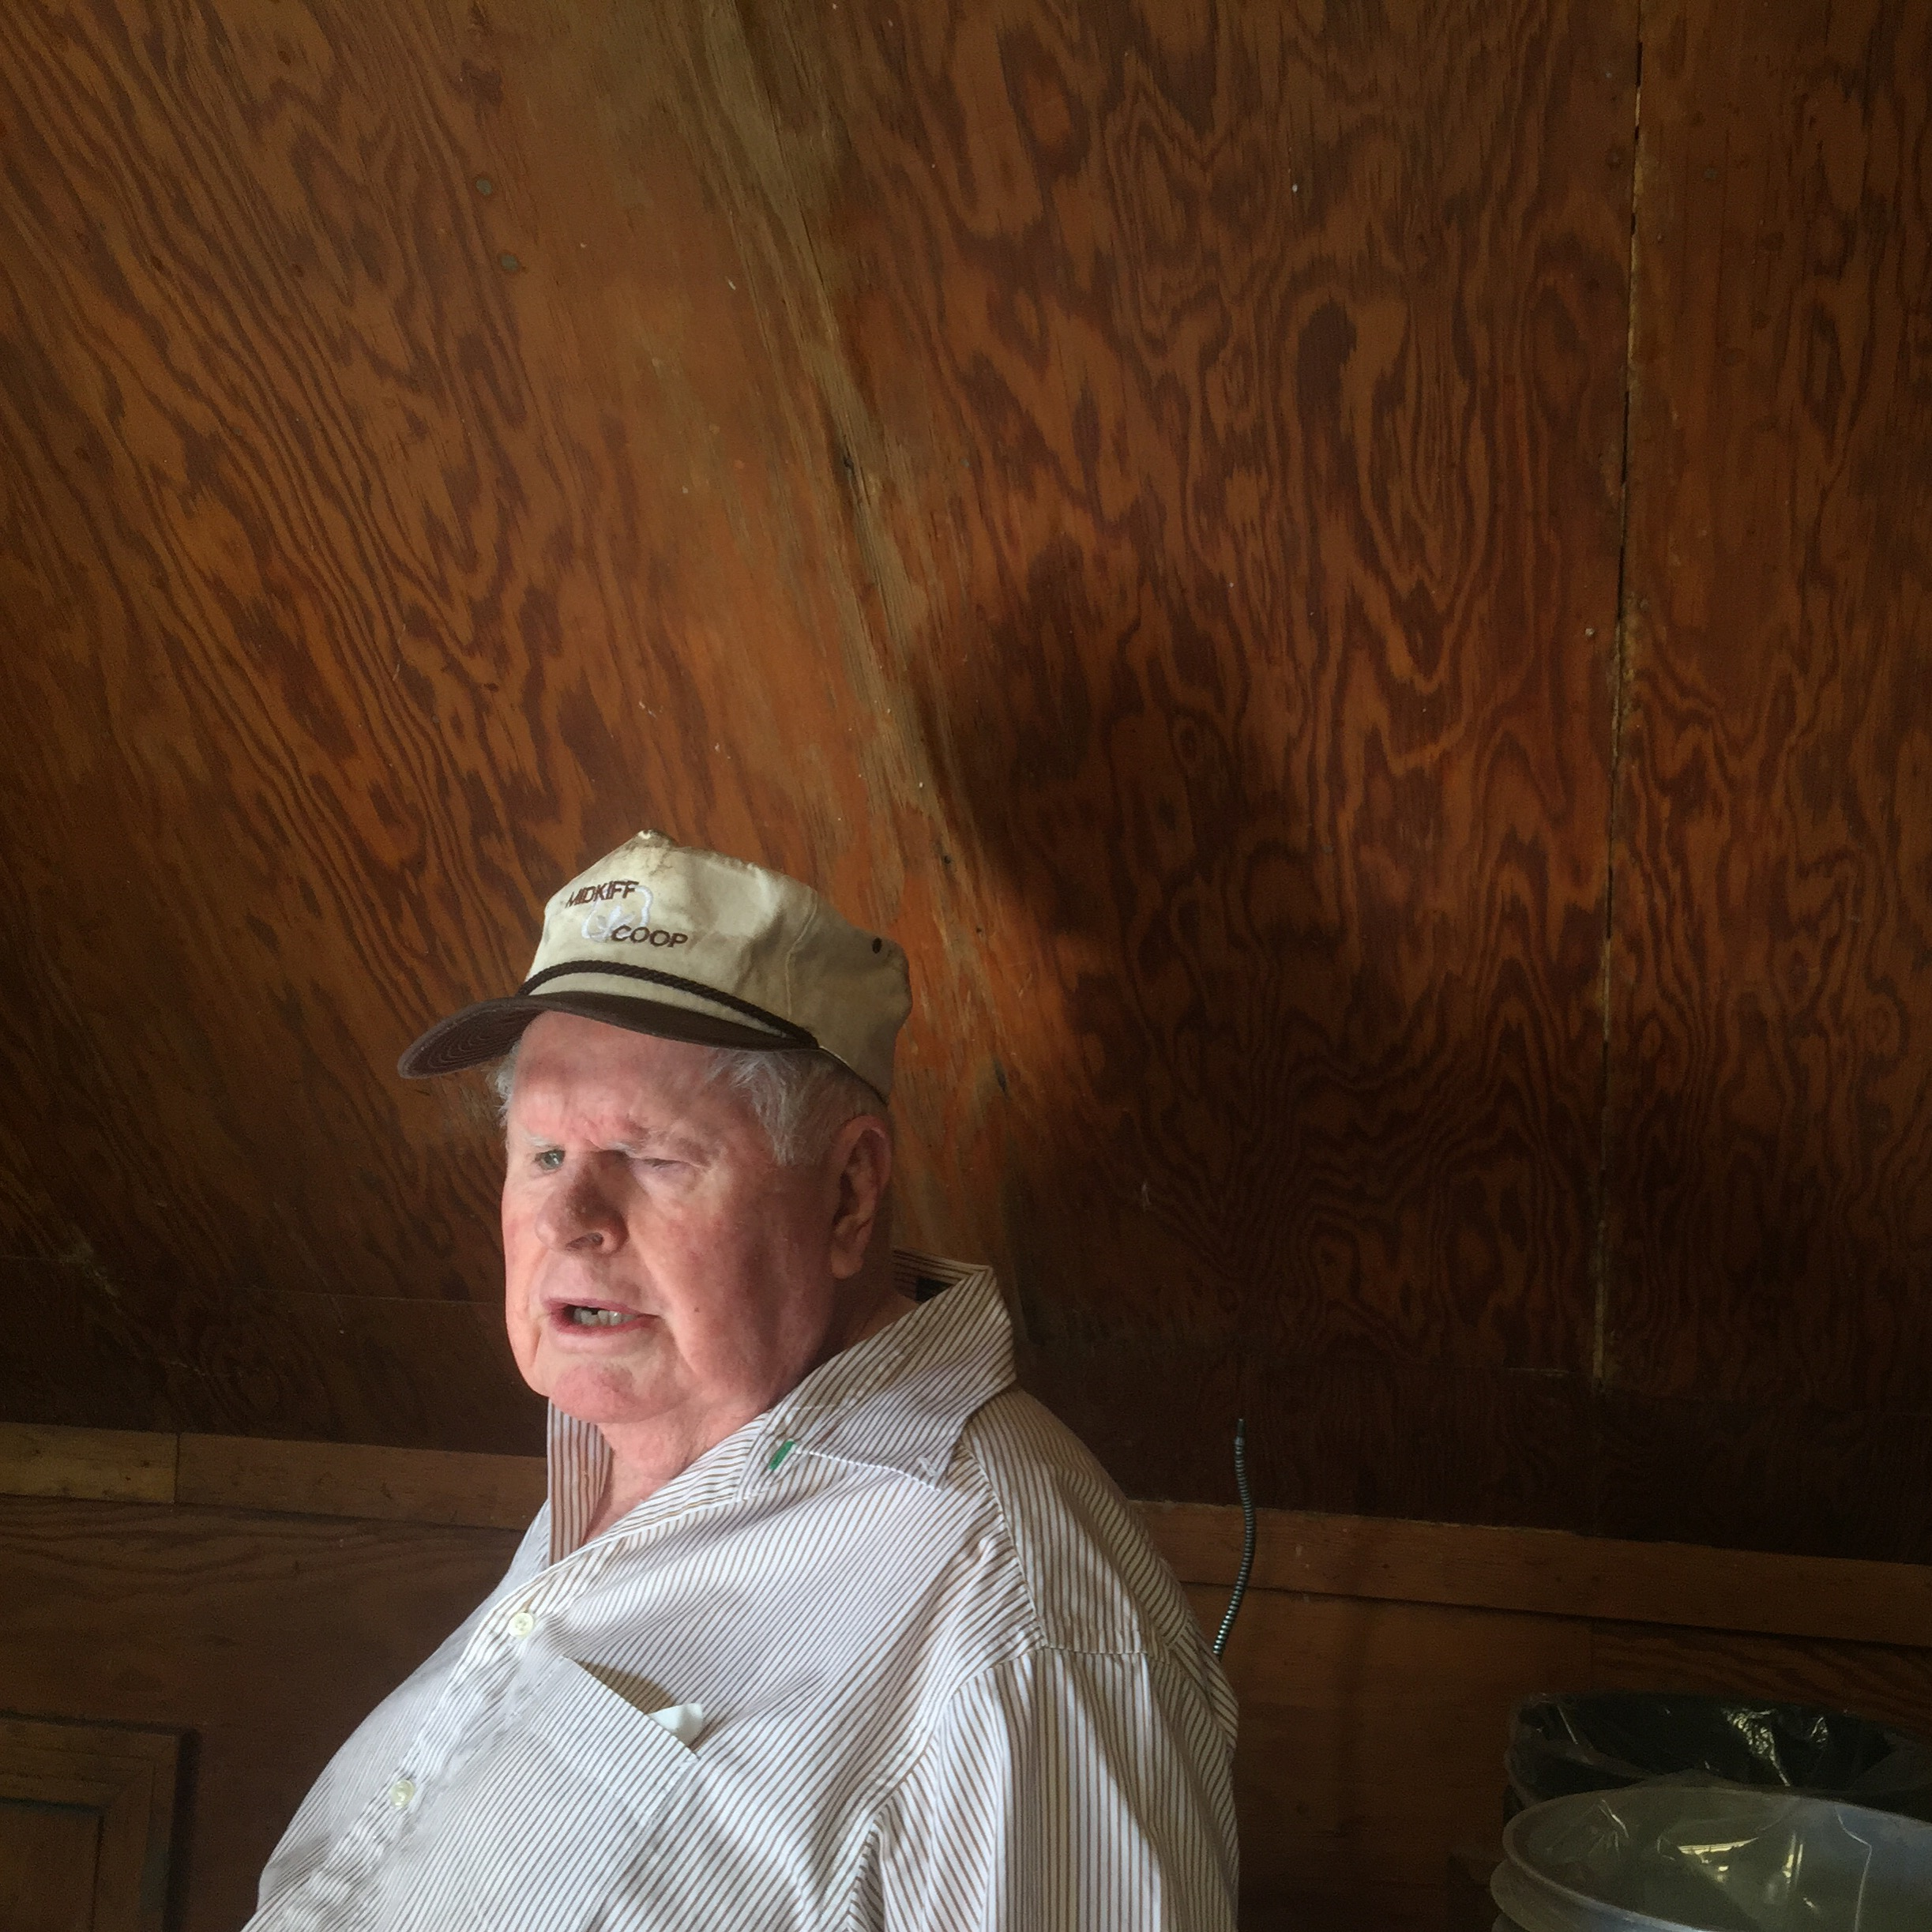 """December, 2015. Midland, TX. Don Edwards, 80. Mr. Edwards is completely blind. He lost his eyesight at age 19 when he was working maintenance in the oil field, setting a cattle guard, and a defective stick of dynamite blew up in his face. He could have lost his life. After gis accident he contacted the Texas Commission for the Blind and the only job they offered him was that of a mop maker. """"I guess they thought that's all a blind man could do, make mops,"""" he said with a chuckle. So he did that for ten years, then went into the real state business and now is retired and in his spare time cracks pecans for the loyal customers he has. He and his wife Shirley have been married 40 years. He has never seen her or his four children.  #SnapshotLives    #midlandtx     Like"""